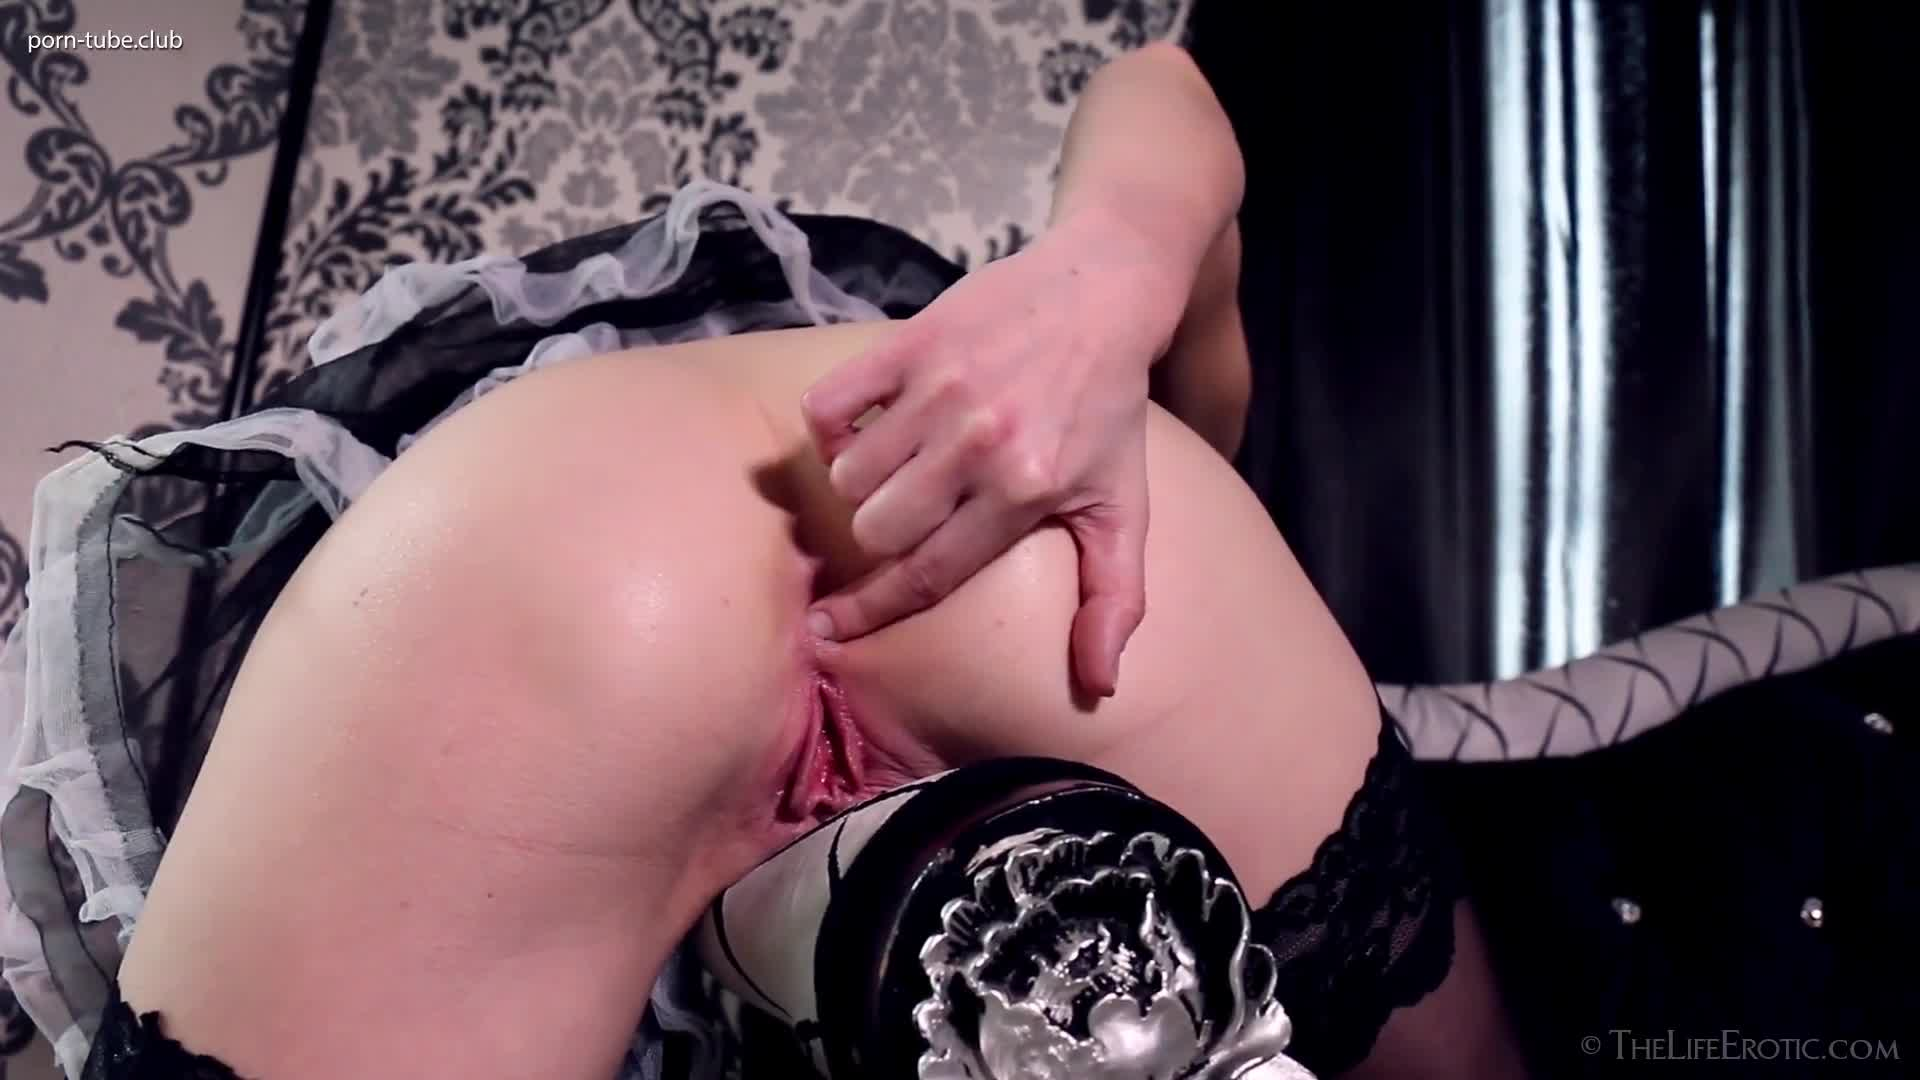 TheLifeErotic - Adelina White Black 2